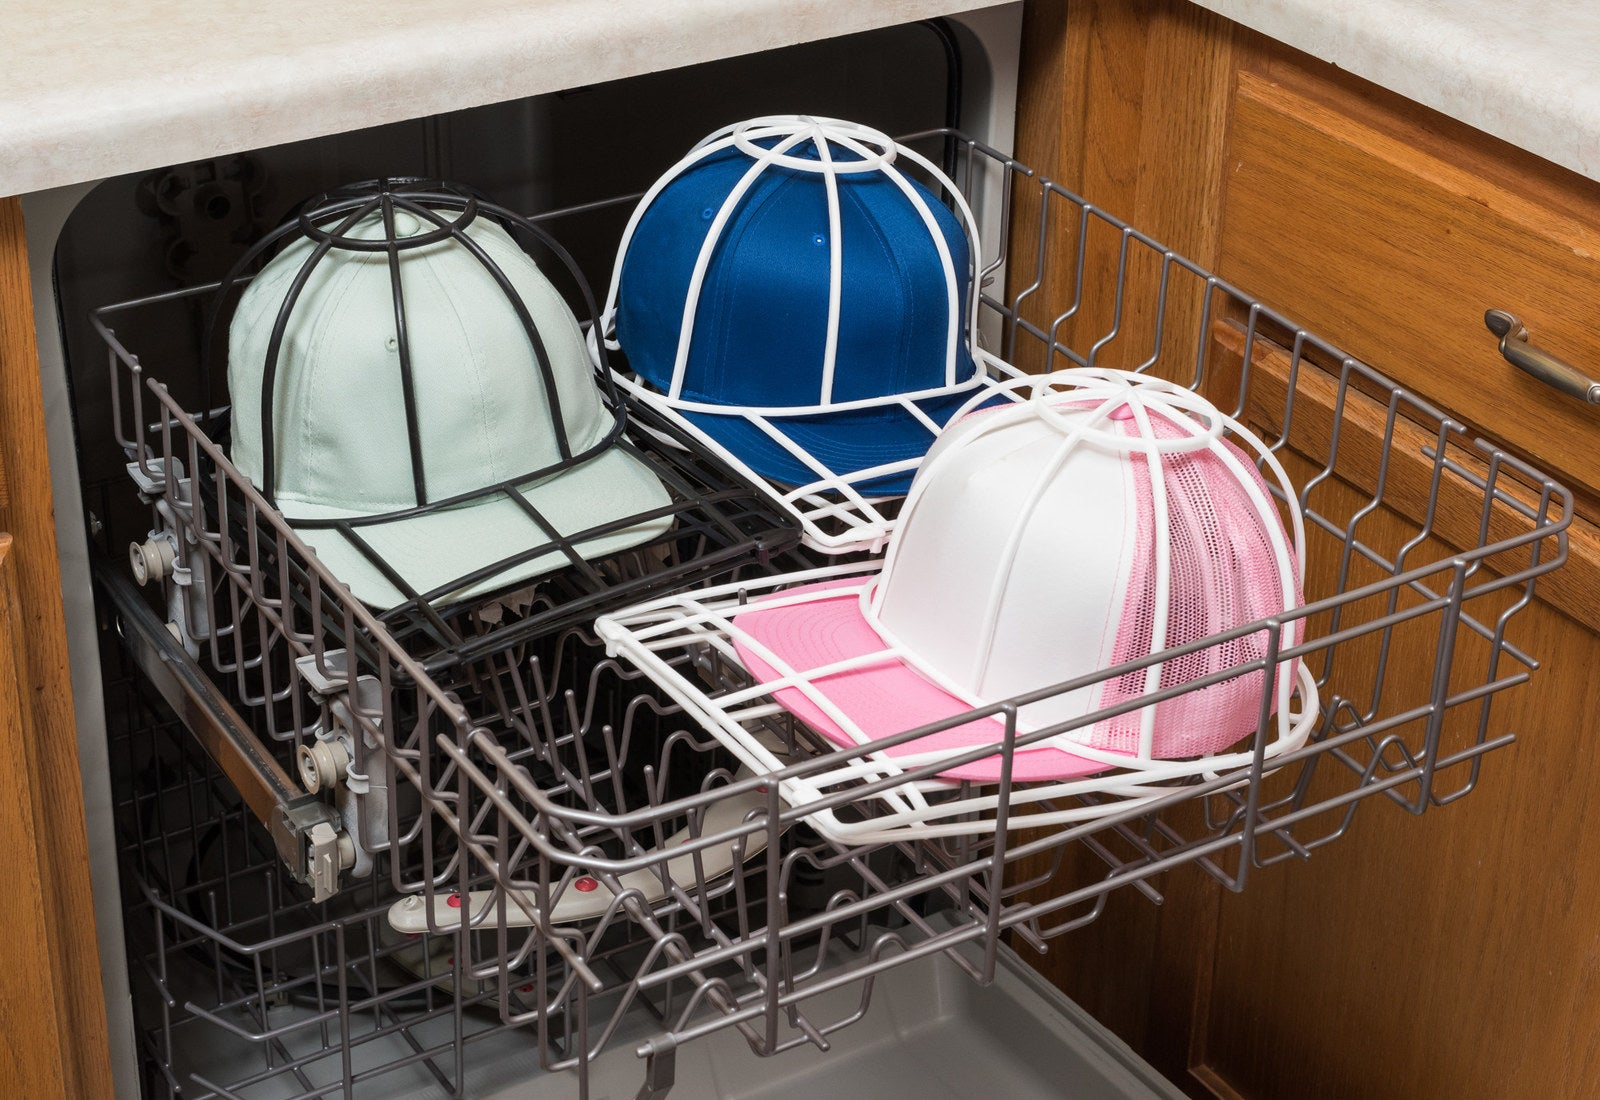 32 Things To Help You Master The Art Of Doing Laundry